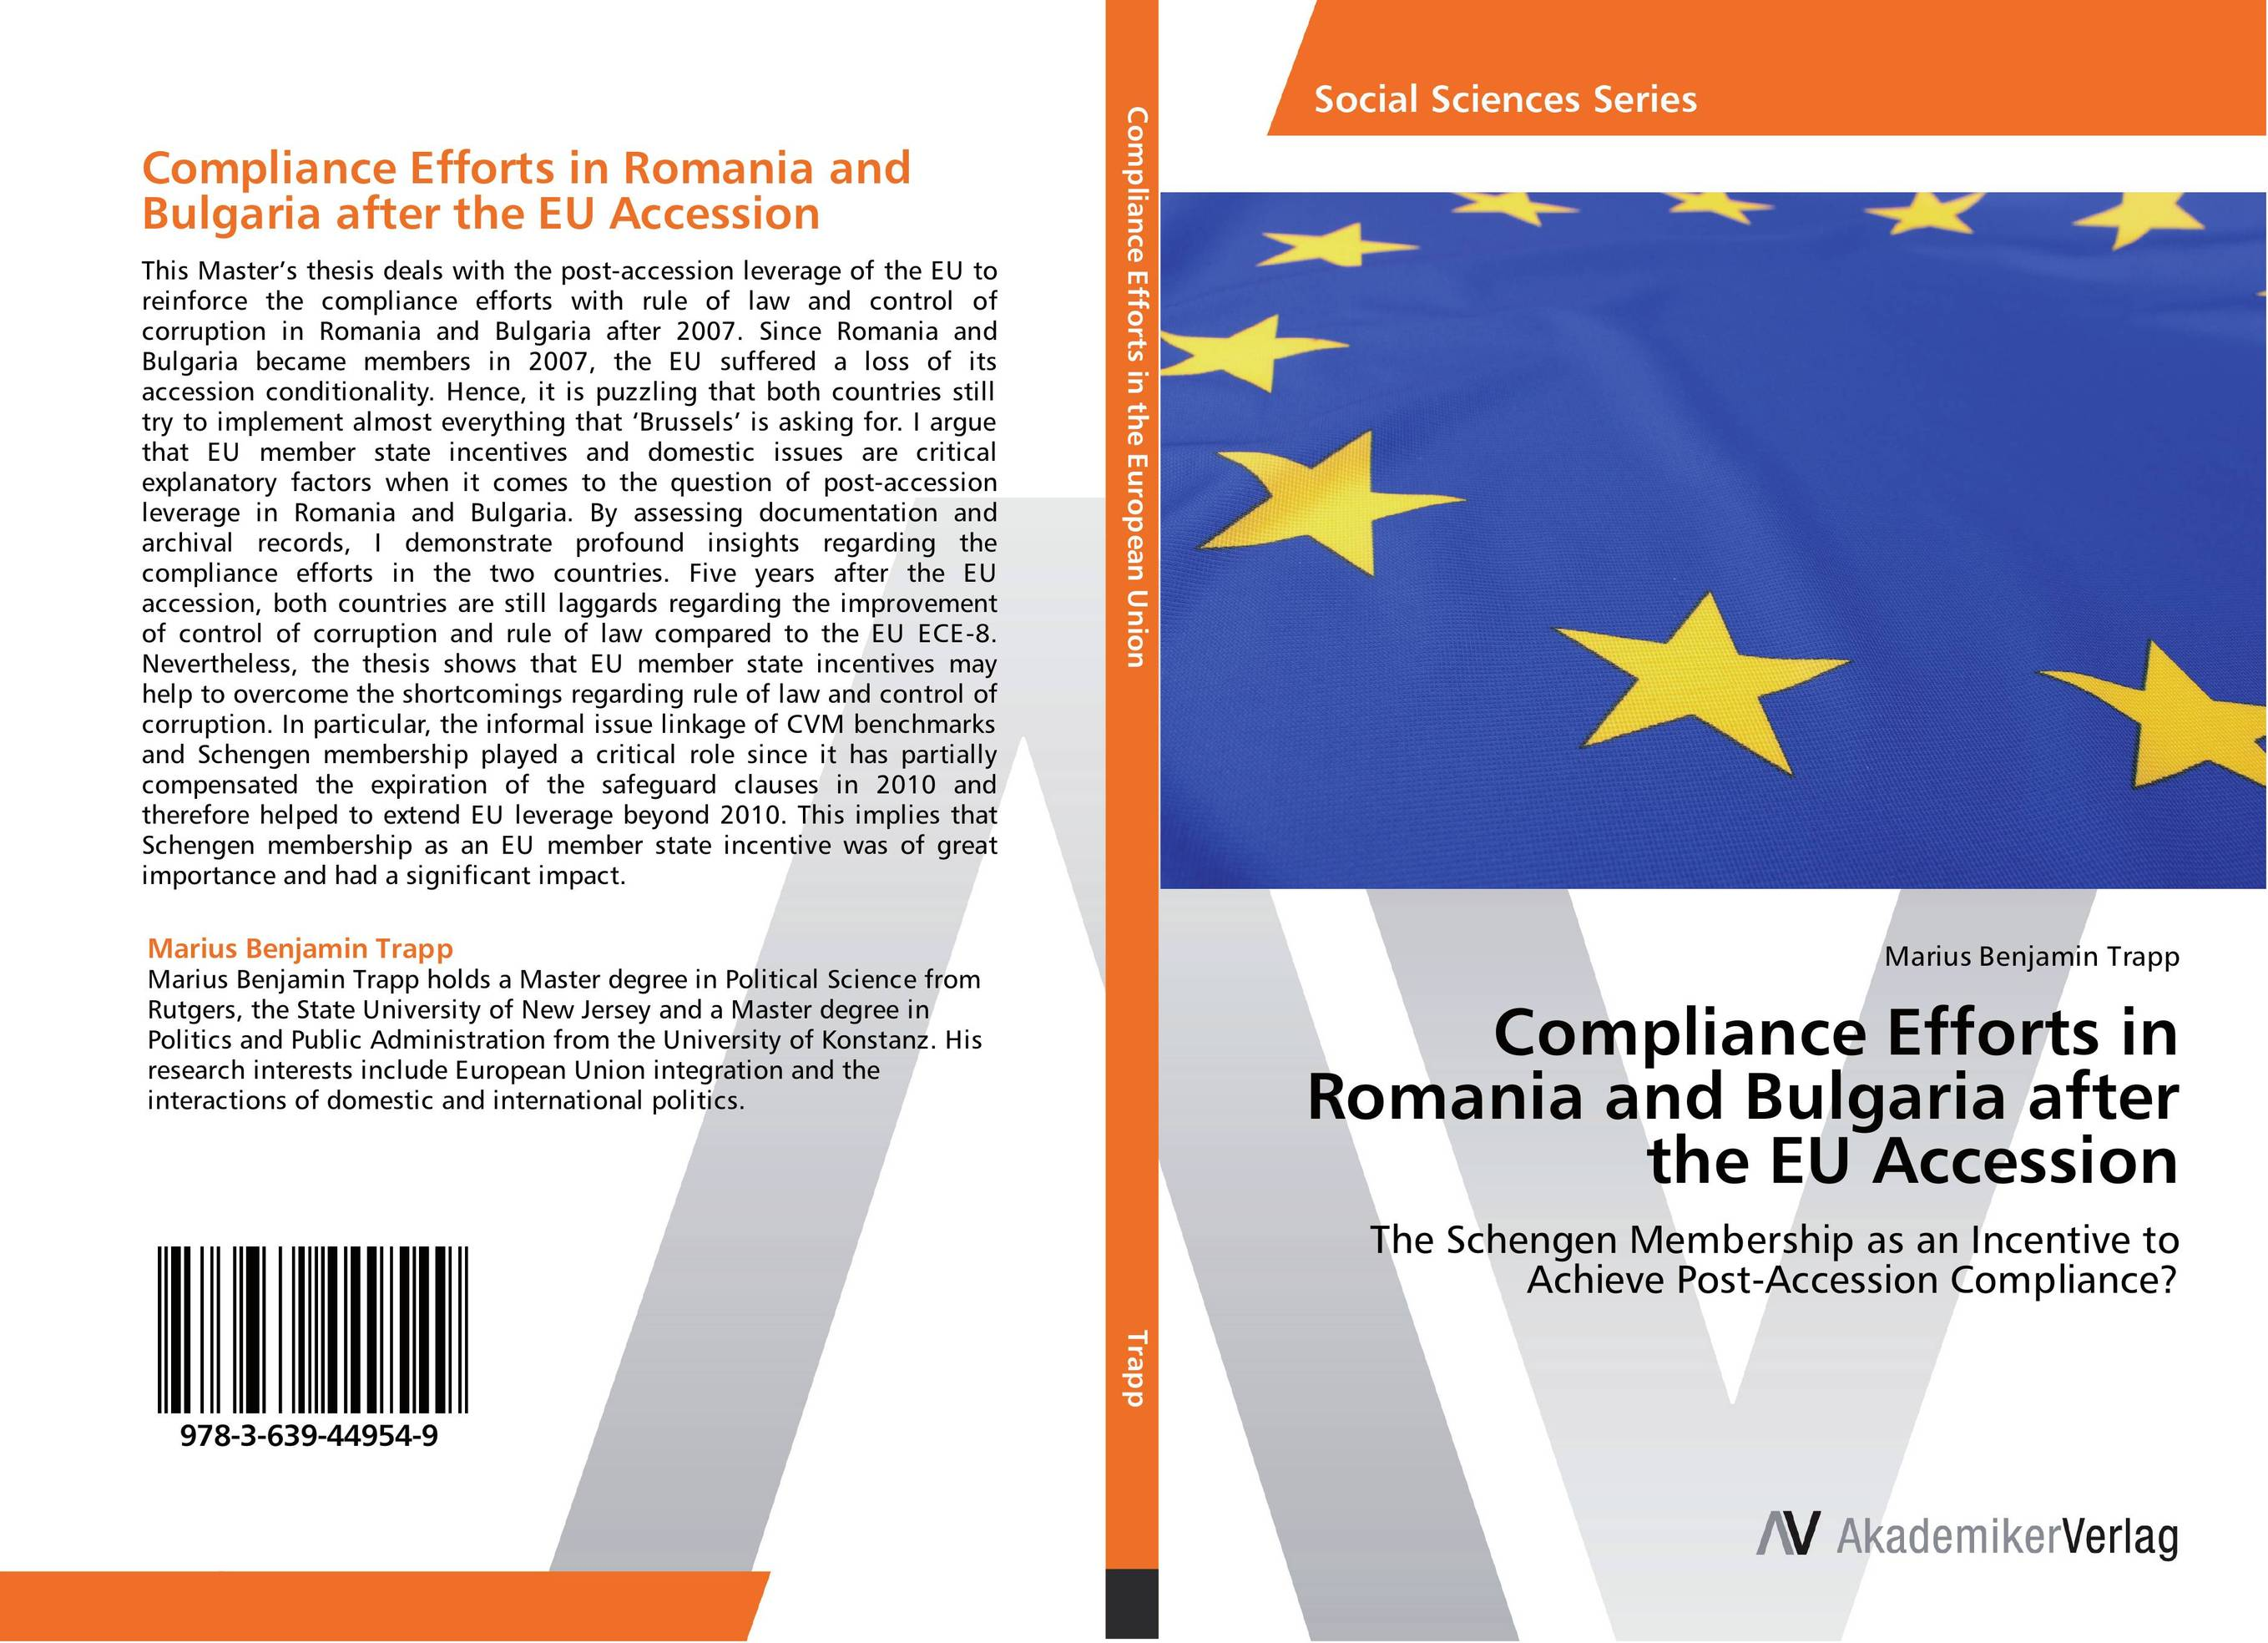 Compliance Efforts in Romania and Bulgaria after the EU Accession the law of god an introduction to orthodox christianity на английском языке